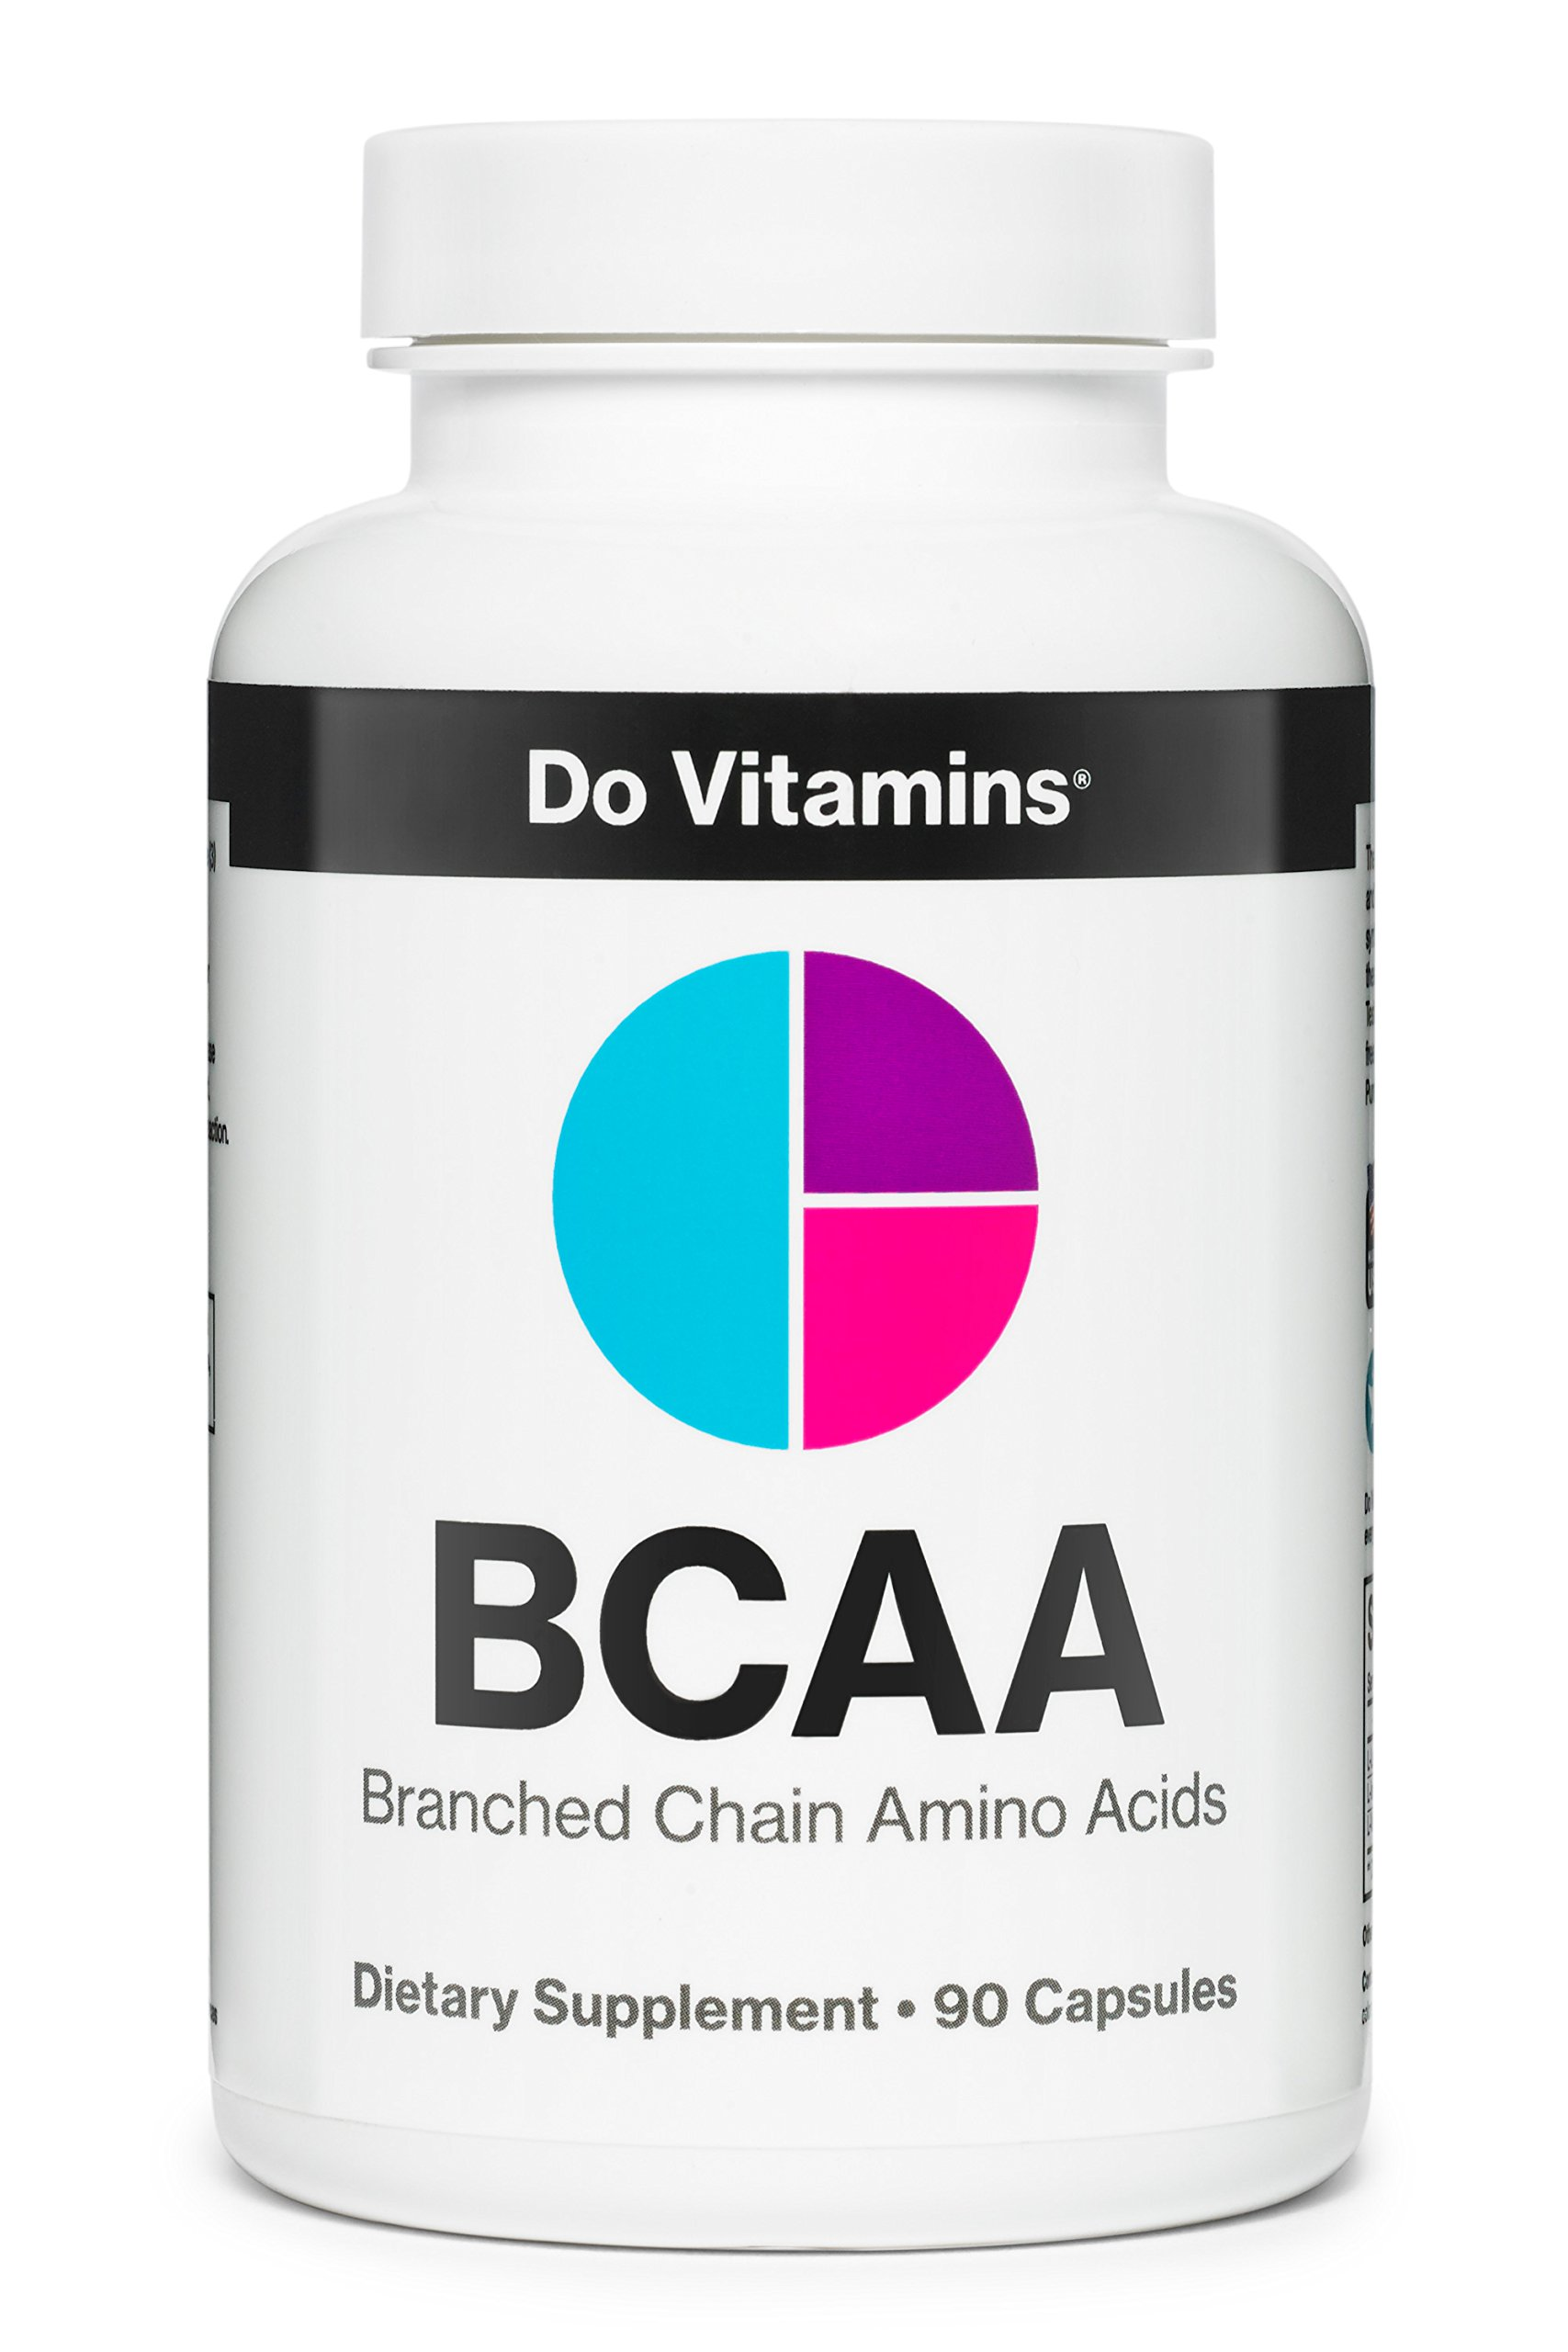 Do Vitamins Natural BCAA Capsules - Ranked #1 Best BCAA Supplement - Pure Plant Based Branched Chain Amino Acids, Vegan BCAA Pills for Muscle Growth & Recovery, 2:1:1 2100mg (90ct)